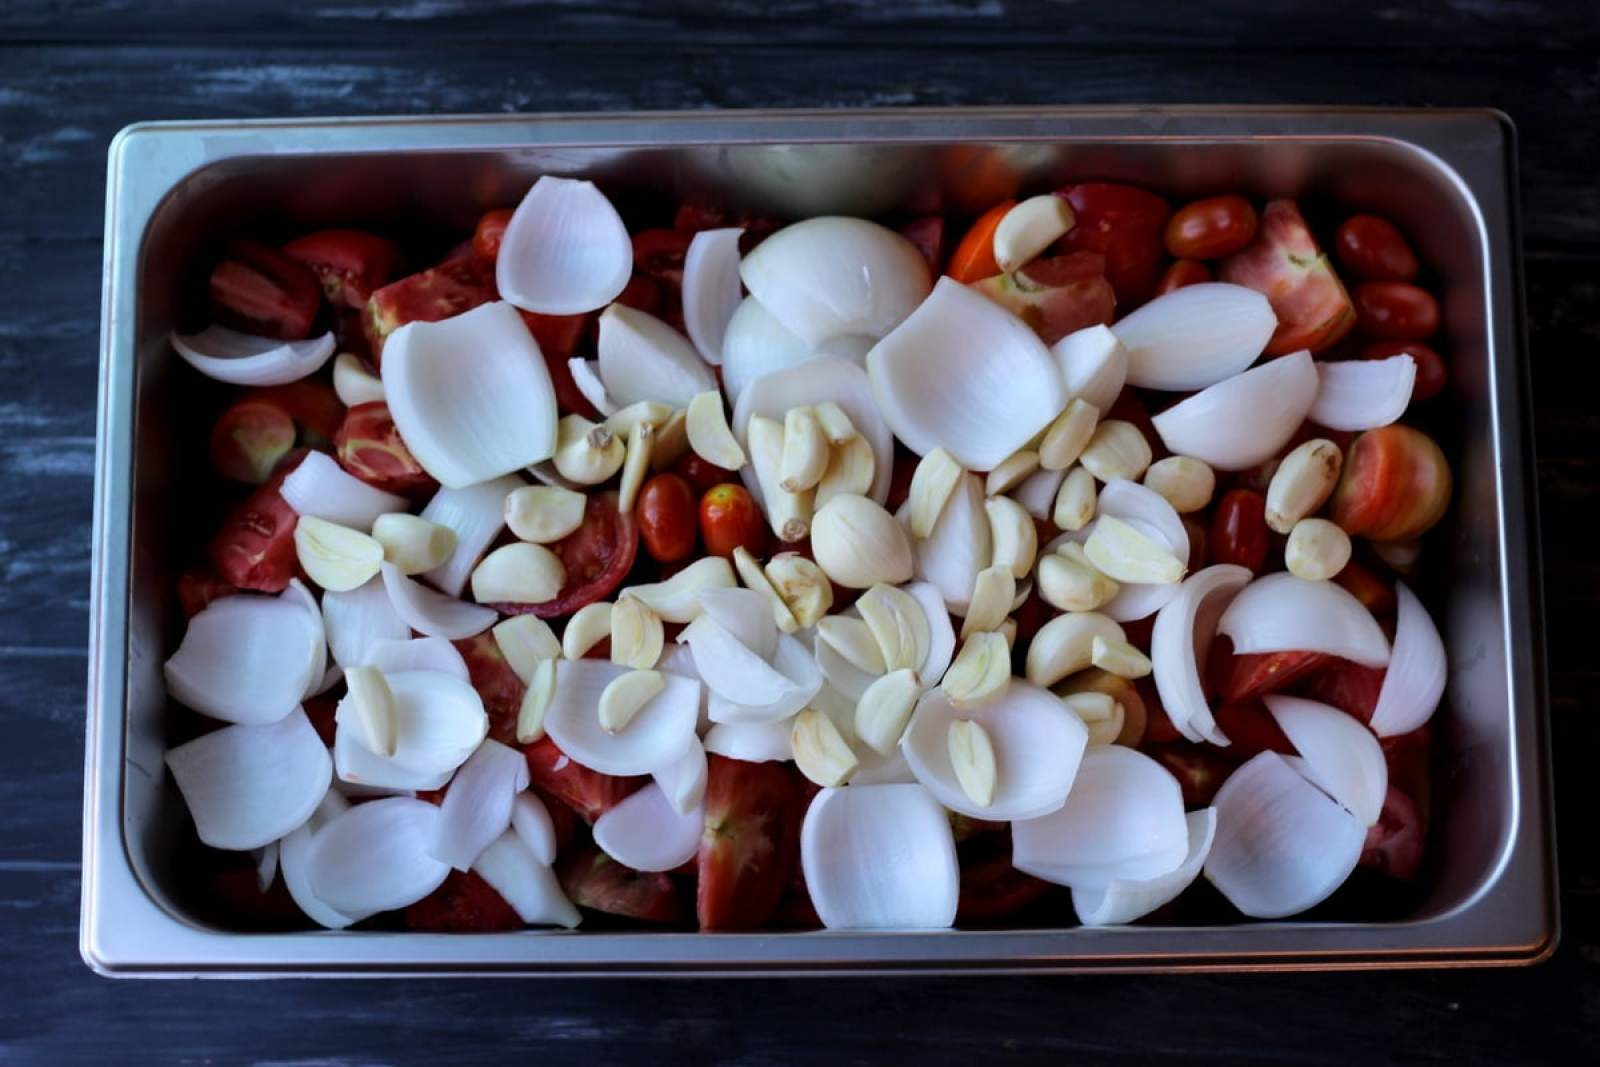 Making Homemade Spaghetti Sauce thewoodenskillet.com